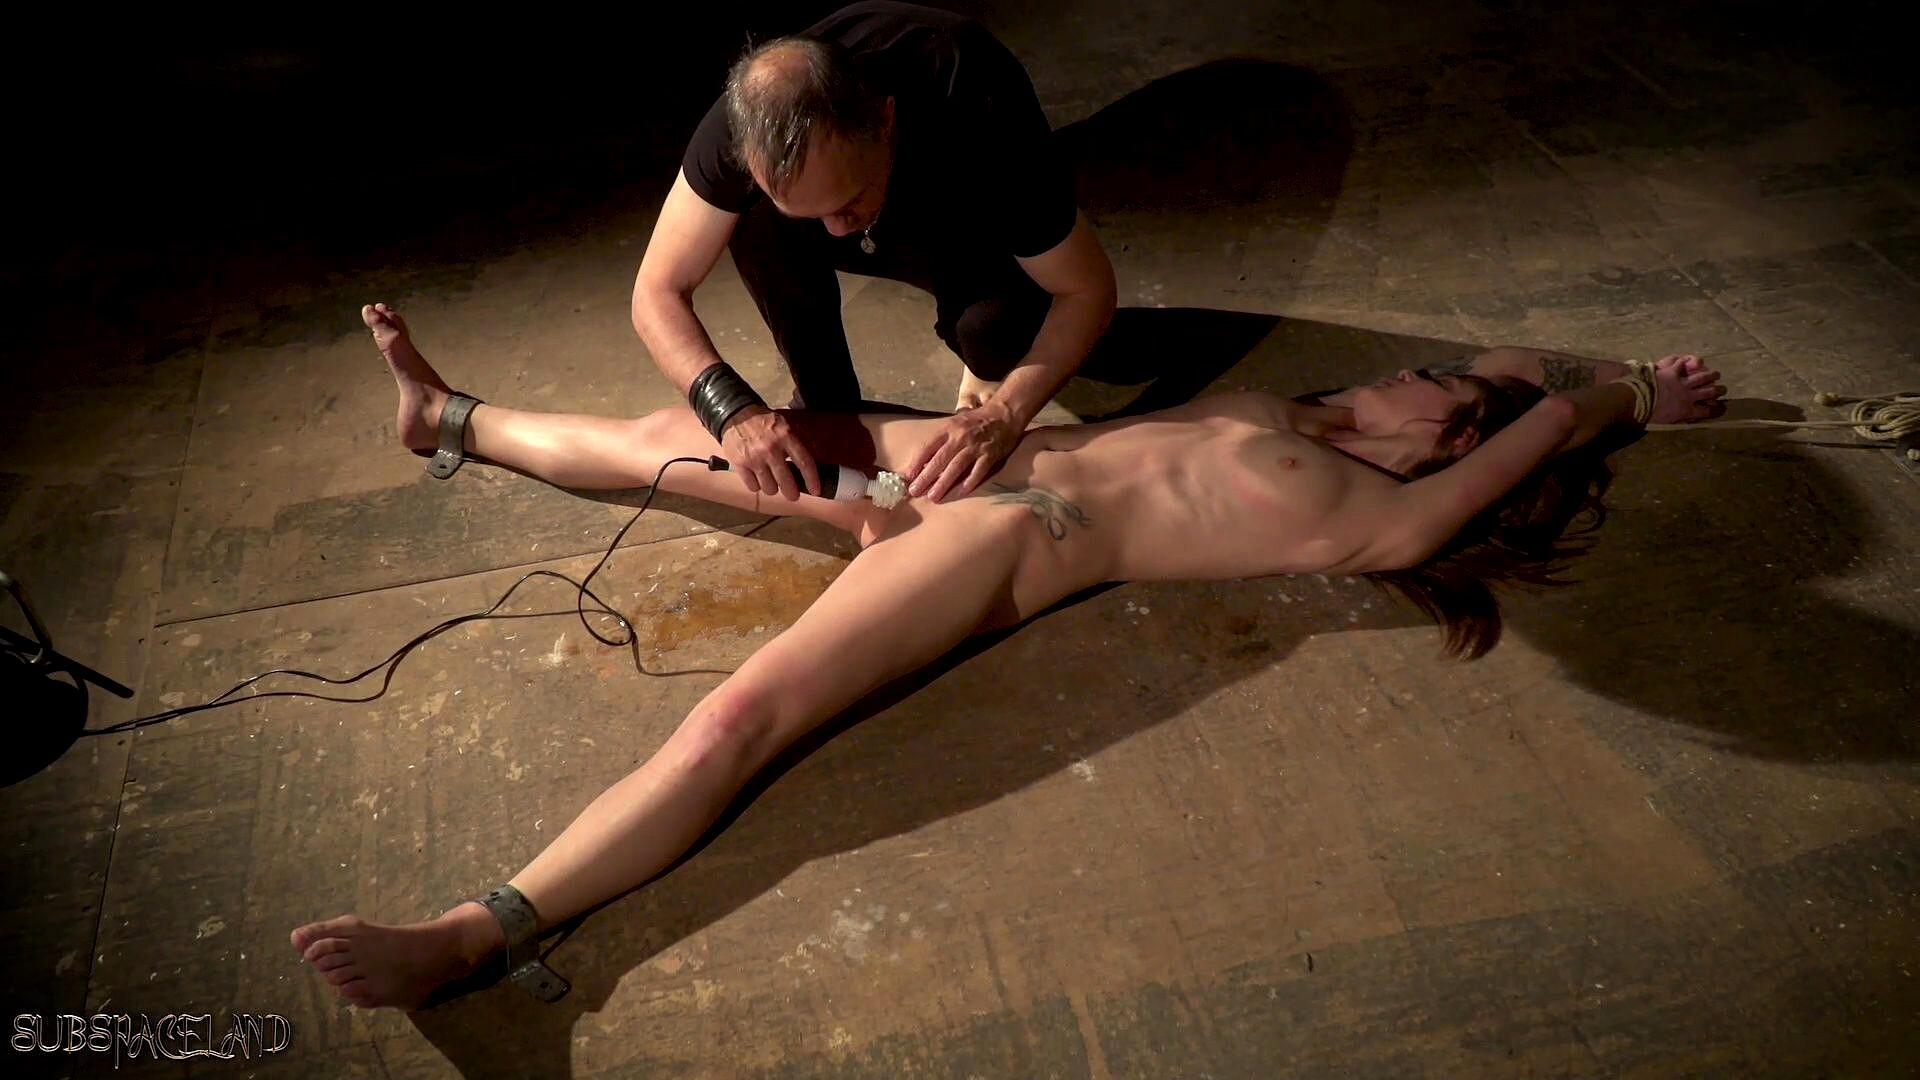 BDSM Bondage Teen And Spanking In Fetish Candle Wax Porn Photo